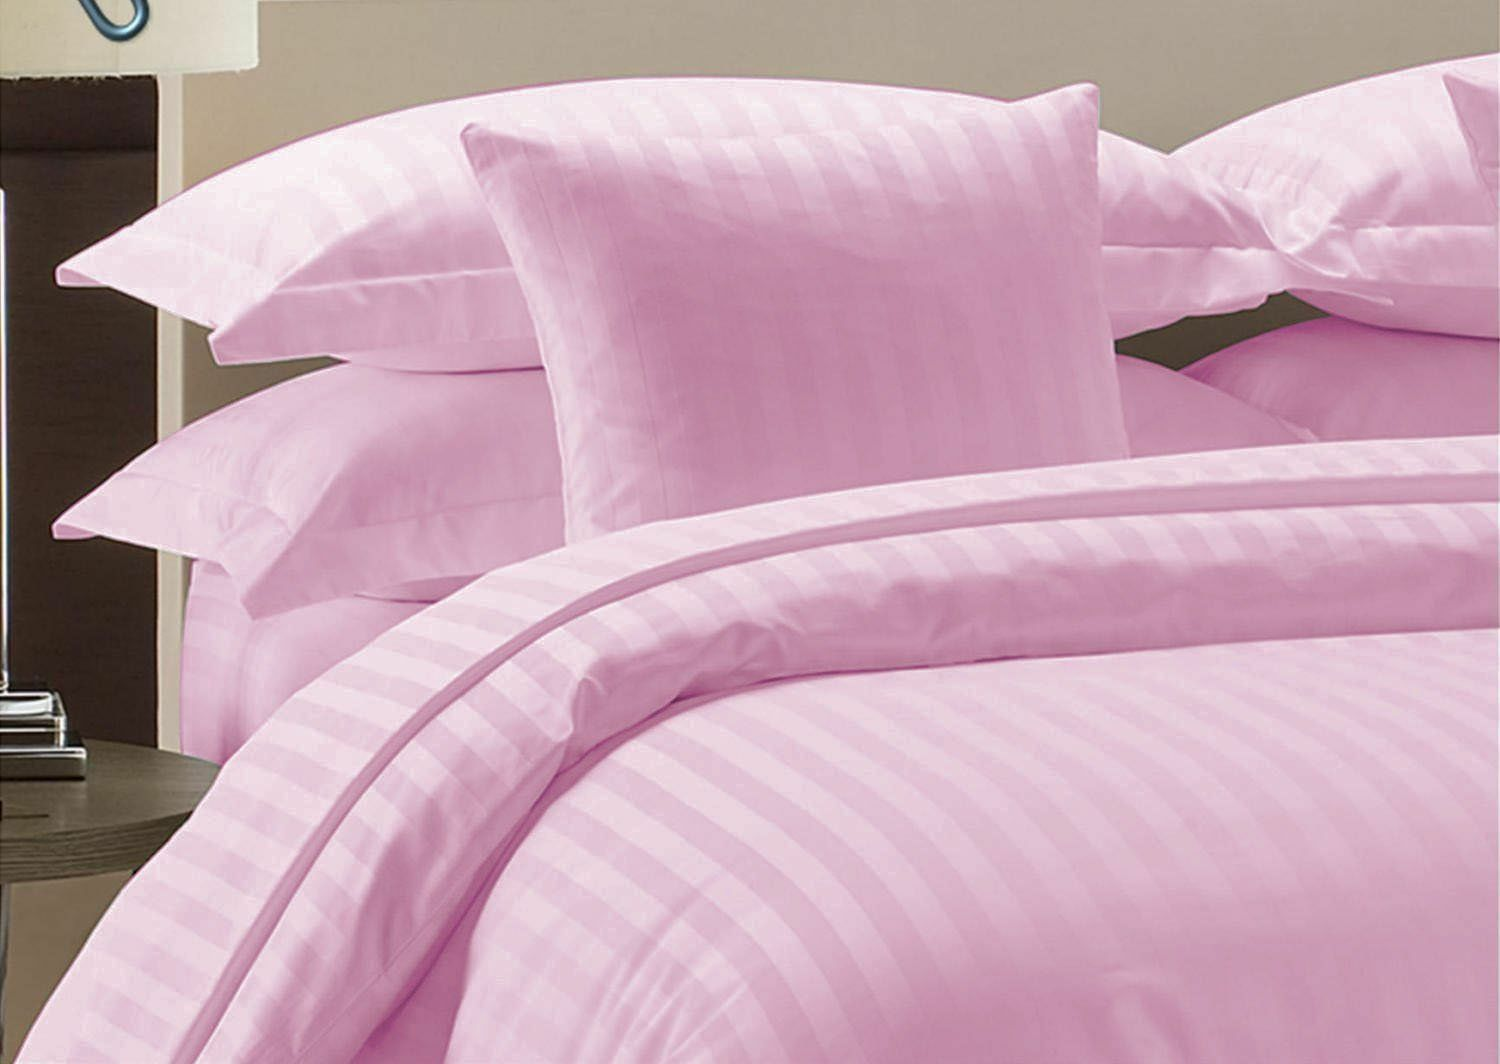 US 6 PC Sheet Set Pink Striped Select Size 1000 Thread Count Egyptian Cotton